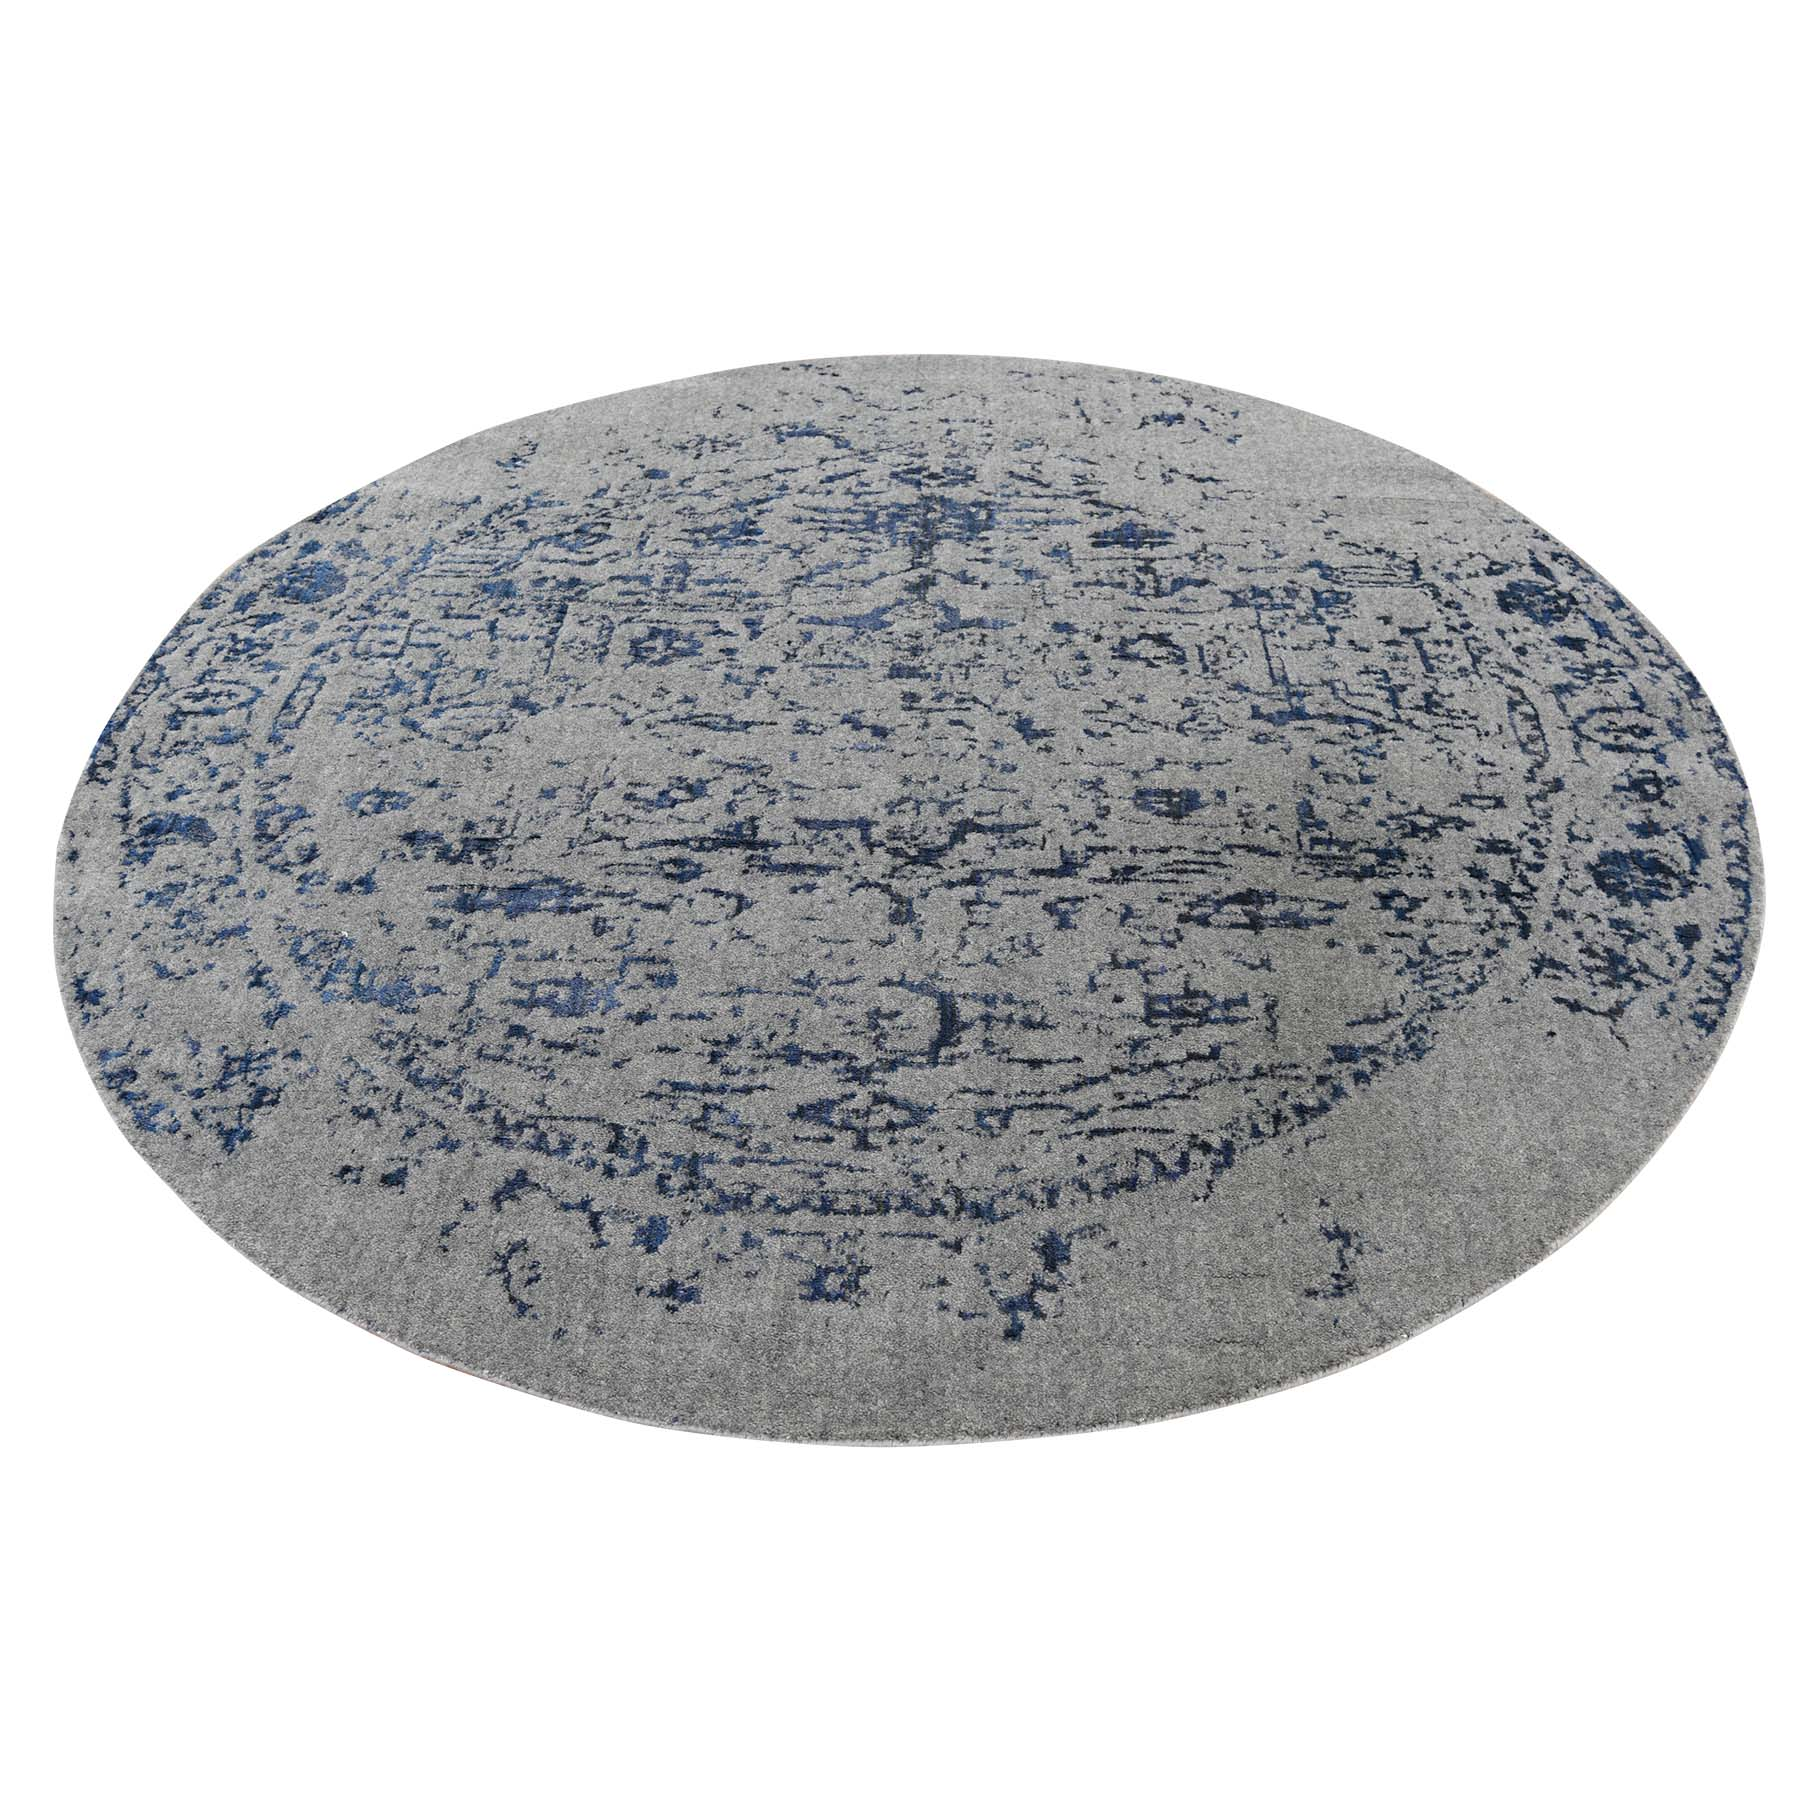 6'x6' jacquard Hand-Loomed With Broken Heriz Design Round Wool And Silk Oriental Rug